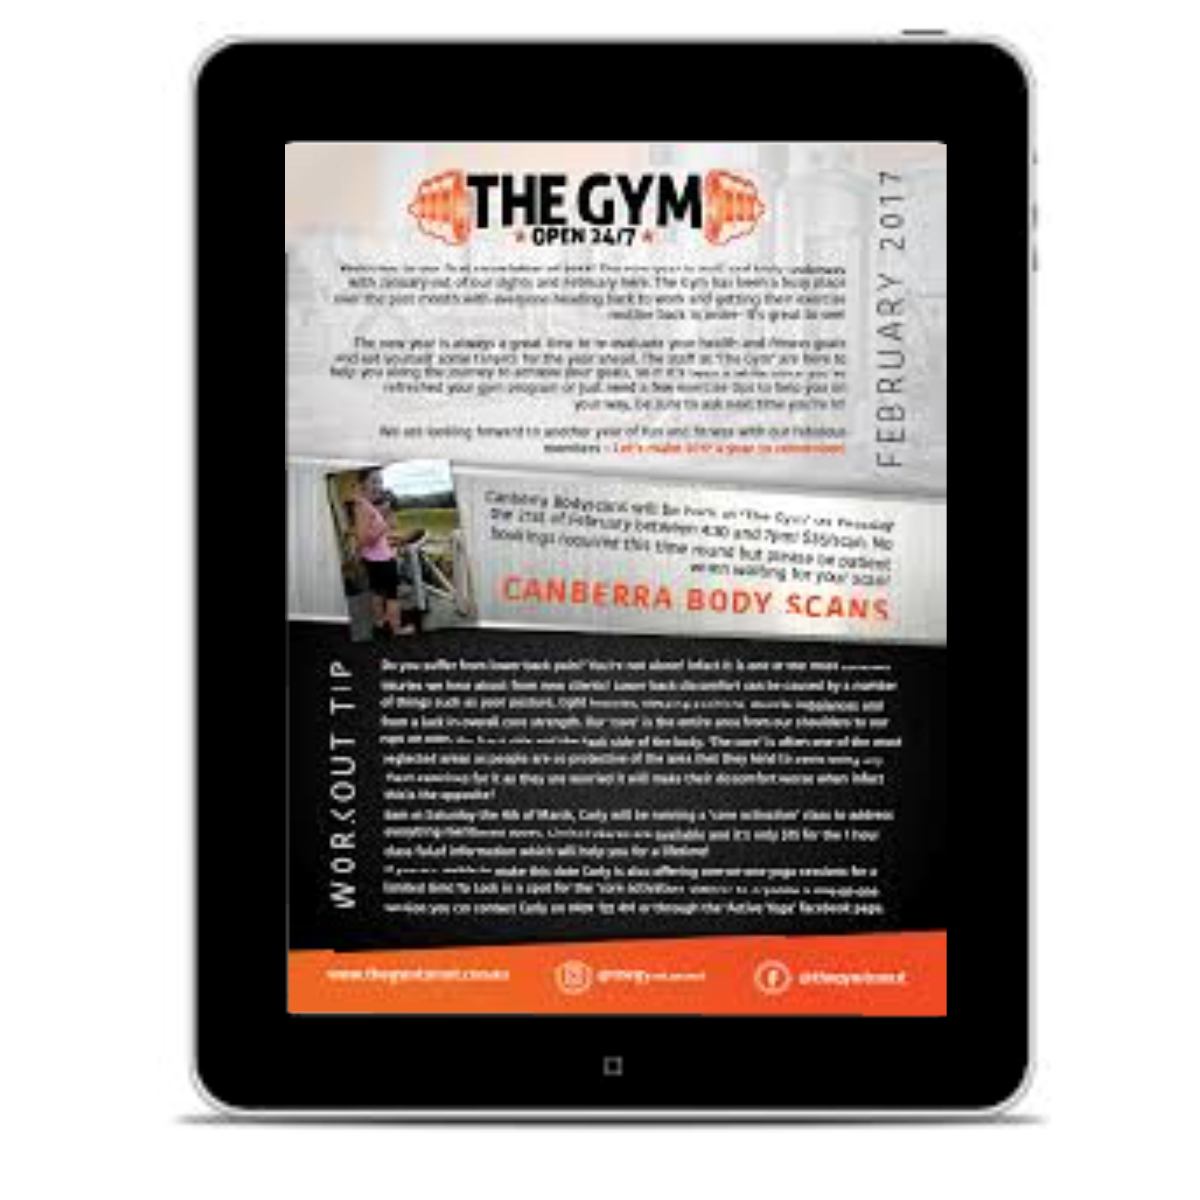 The Gym Newsletter